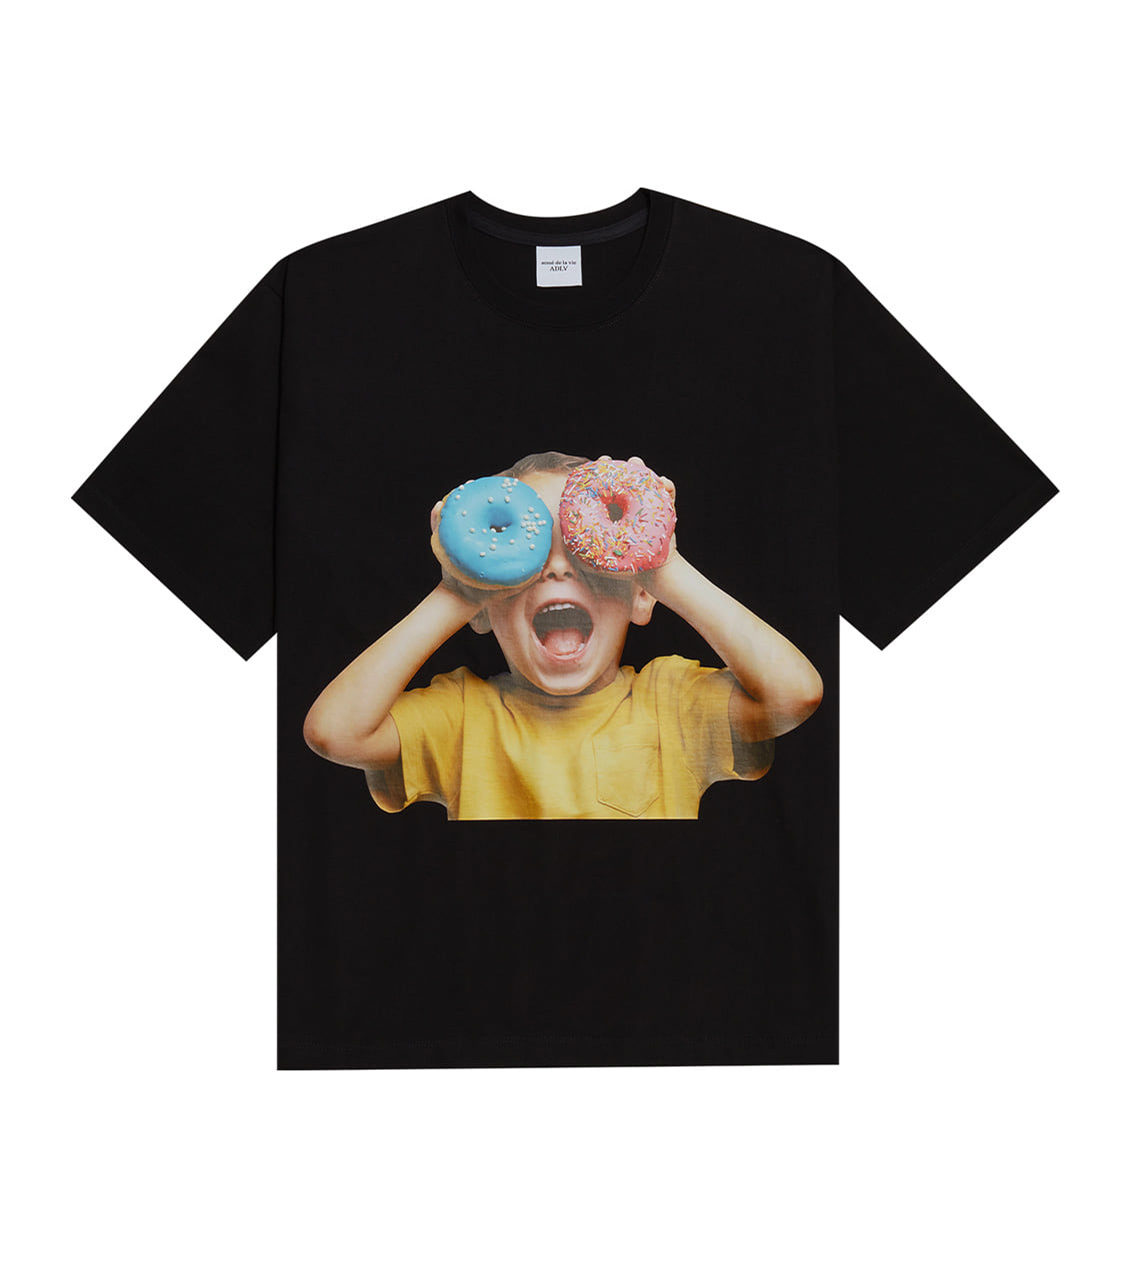 TWICE X ADLV BABY FACE SHORT SLEEVE T-SHIRT BLACK DONUTS 5